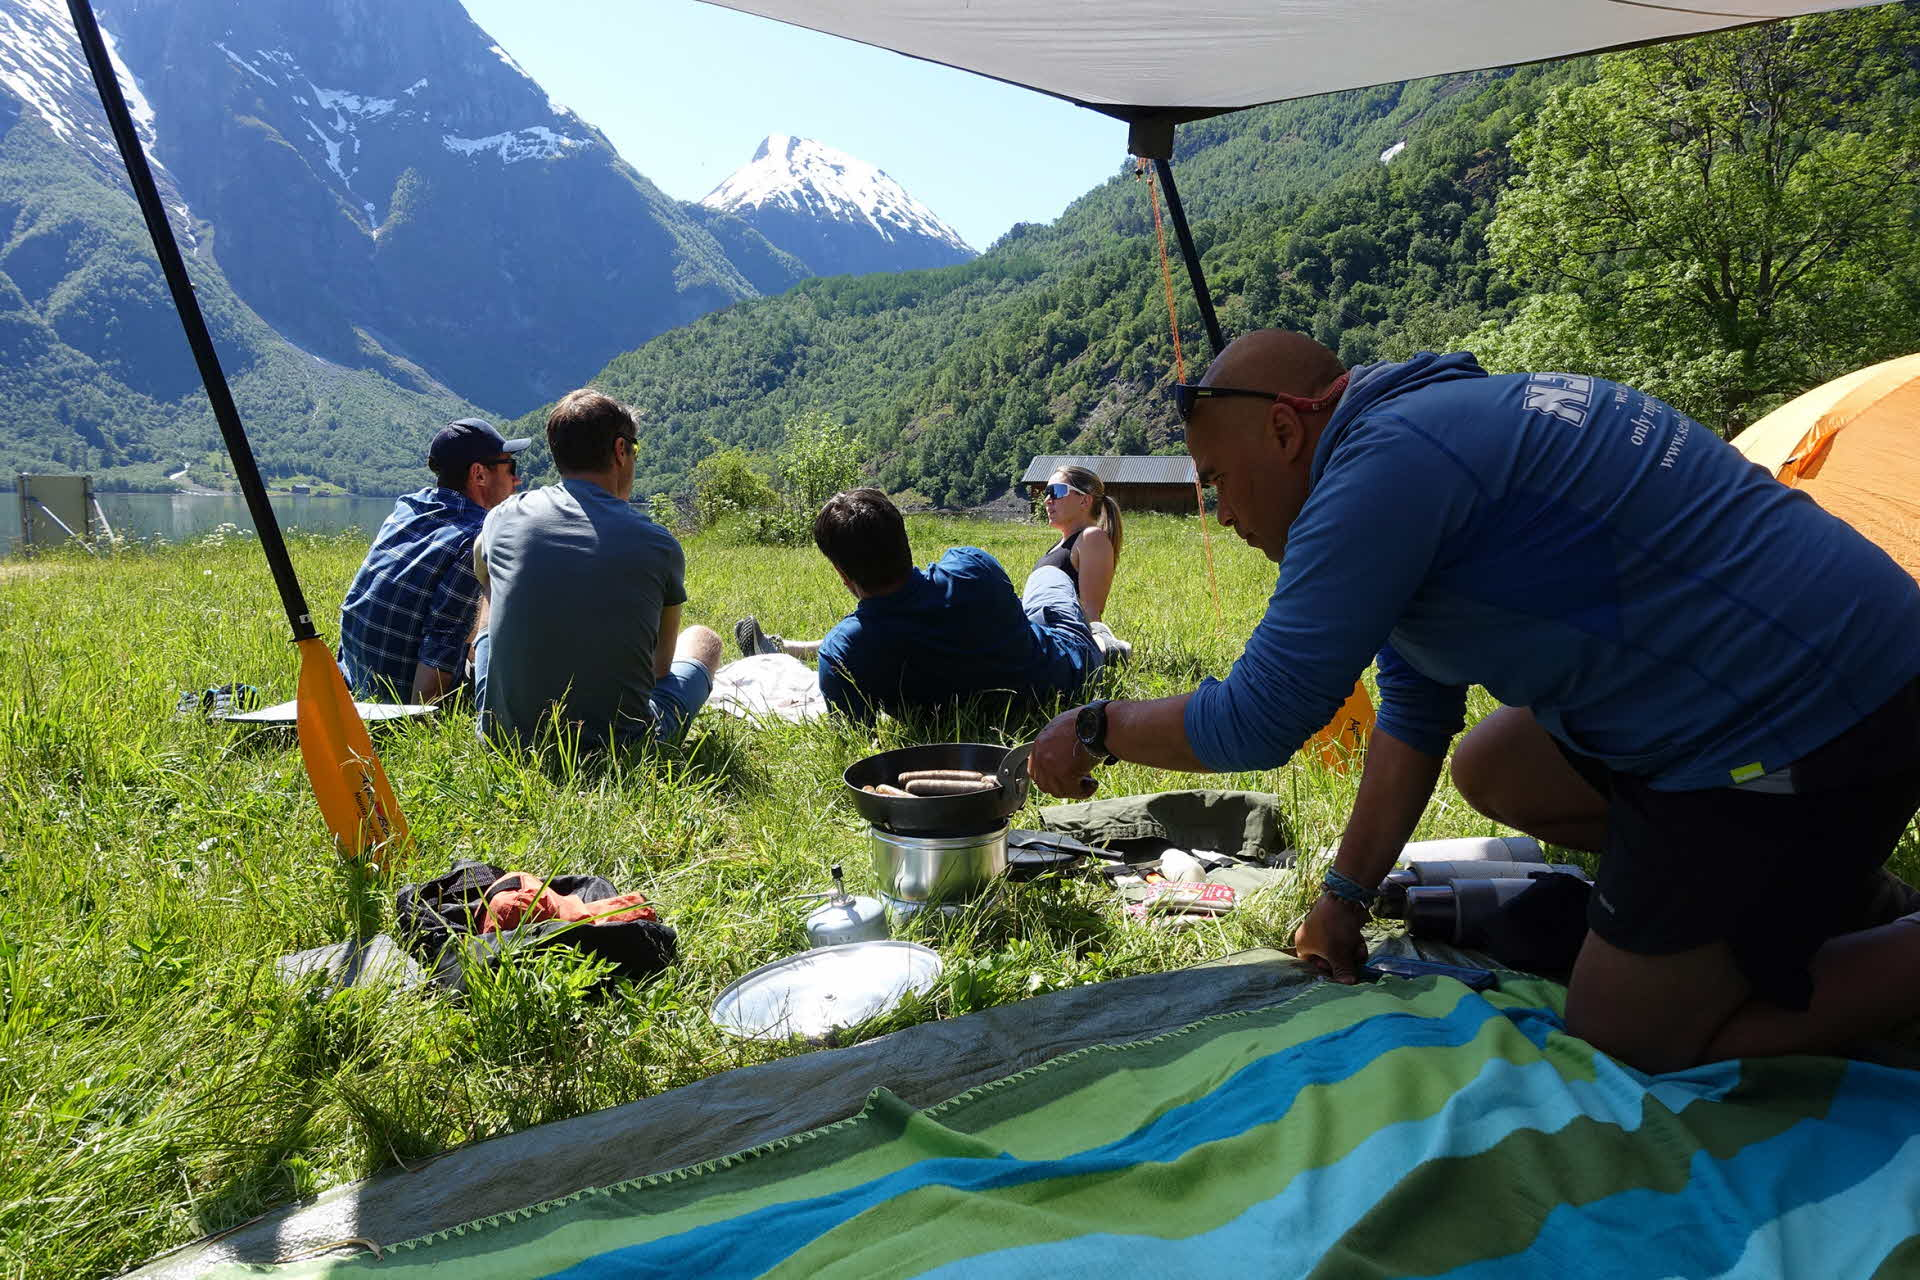 4 people relaxing in sun in green meadow by UNESCO Naeroyfjord while another is preparing food under sun sail